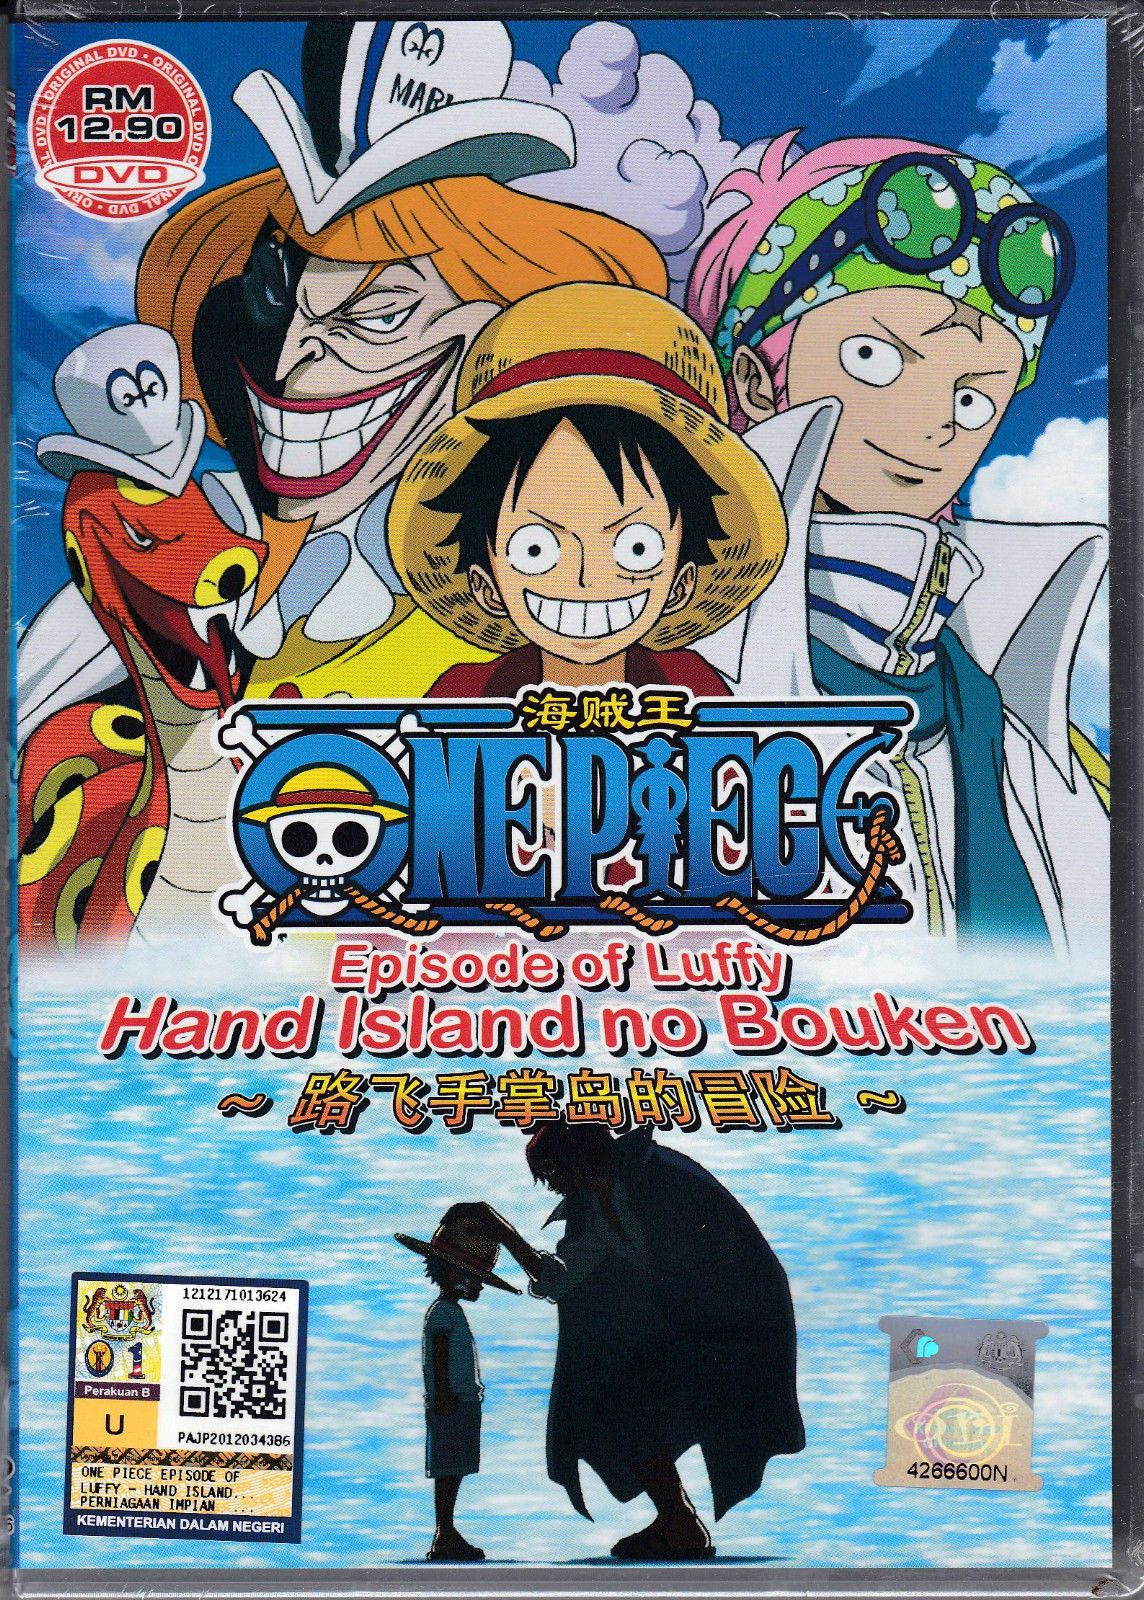 DVD ANIME FILM ONE PIECE Episode of Luffy Hand Island no ...